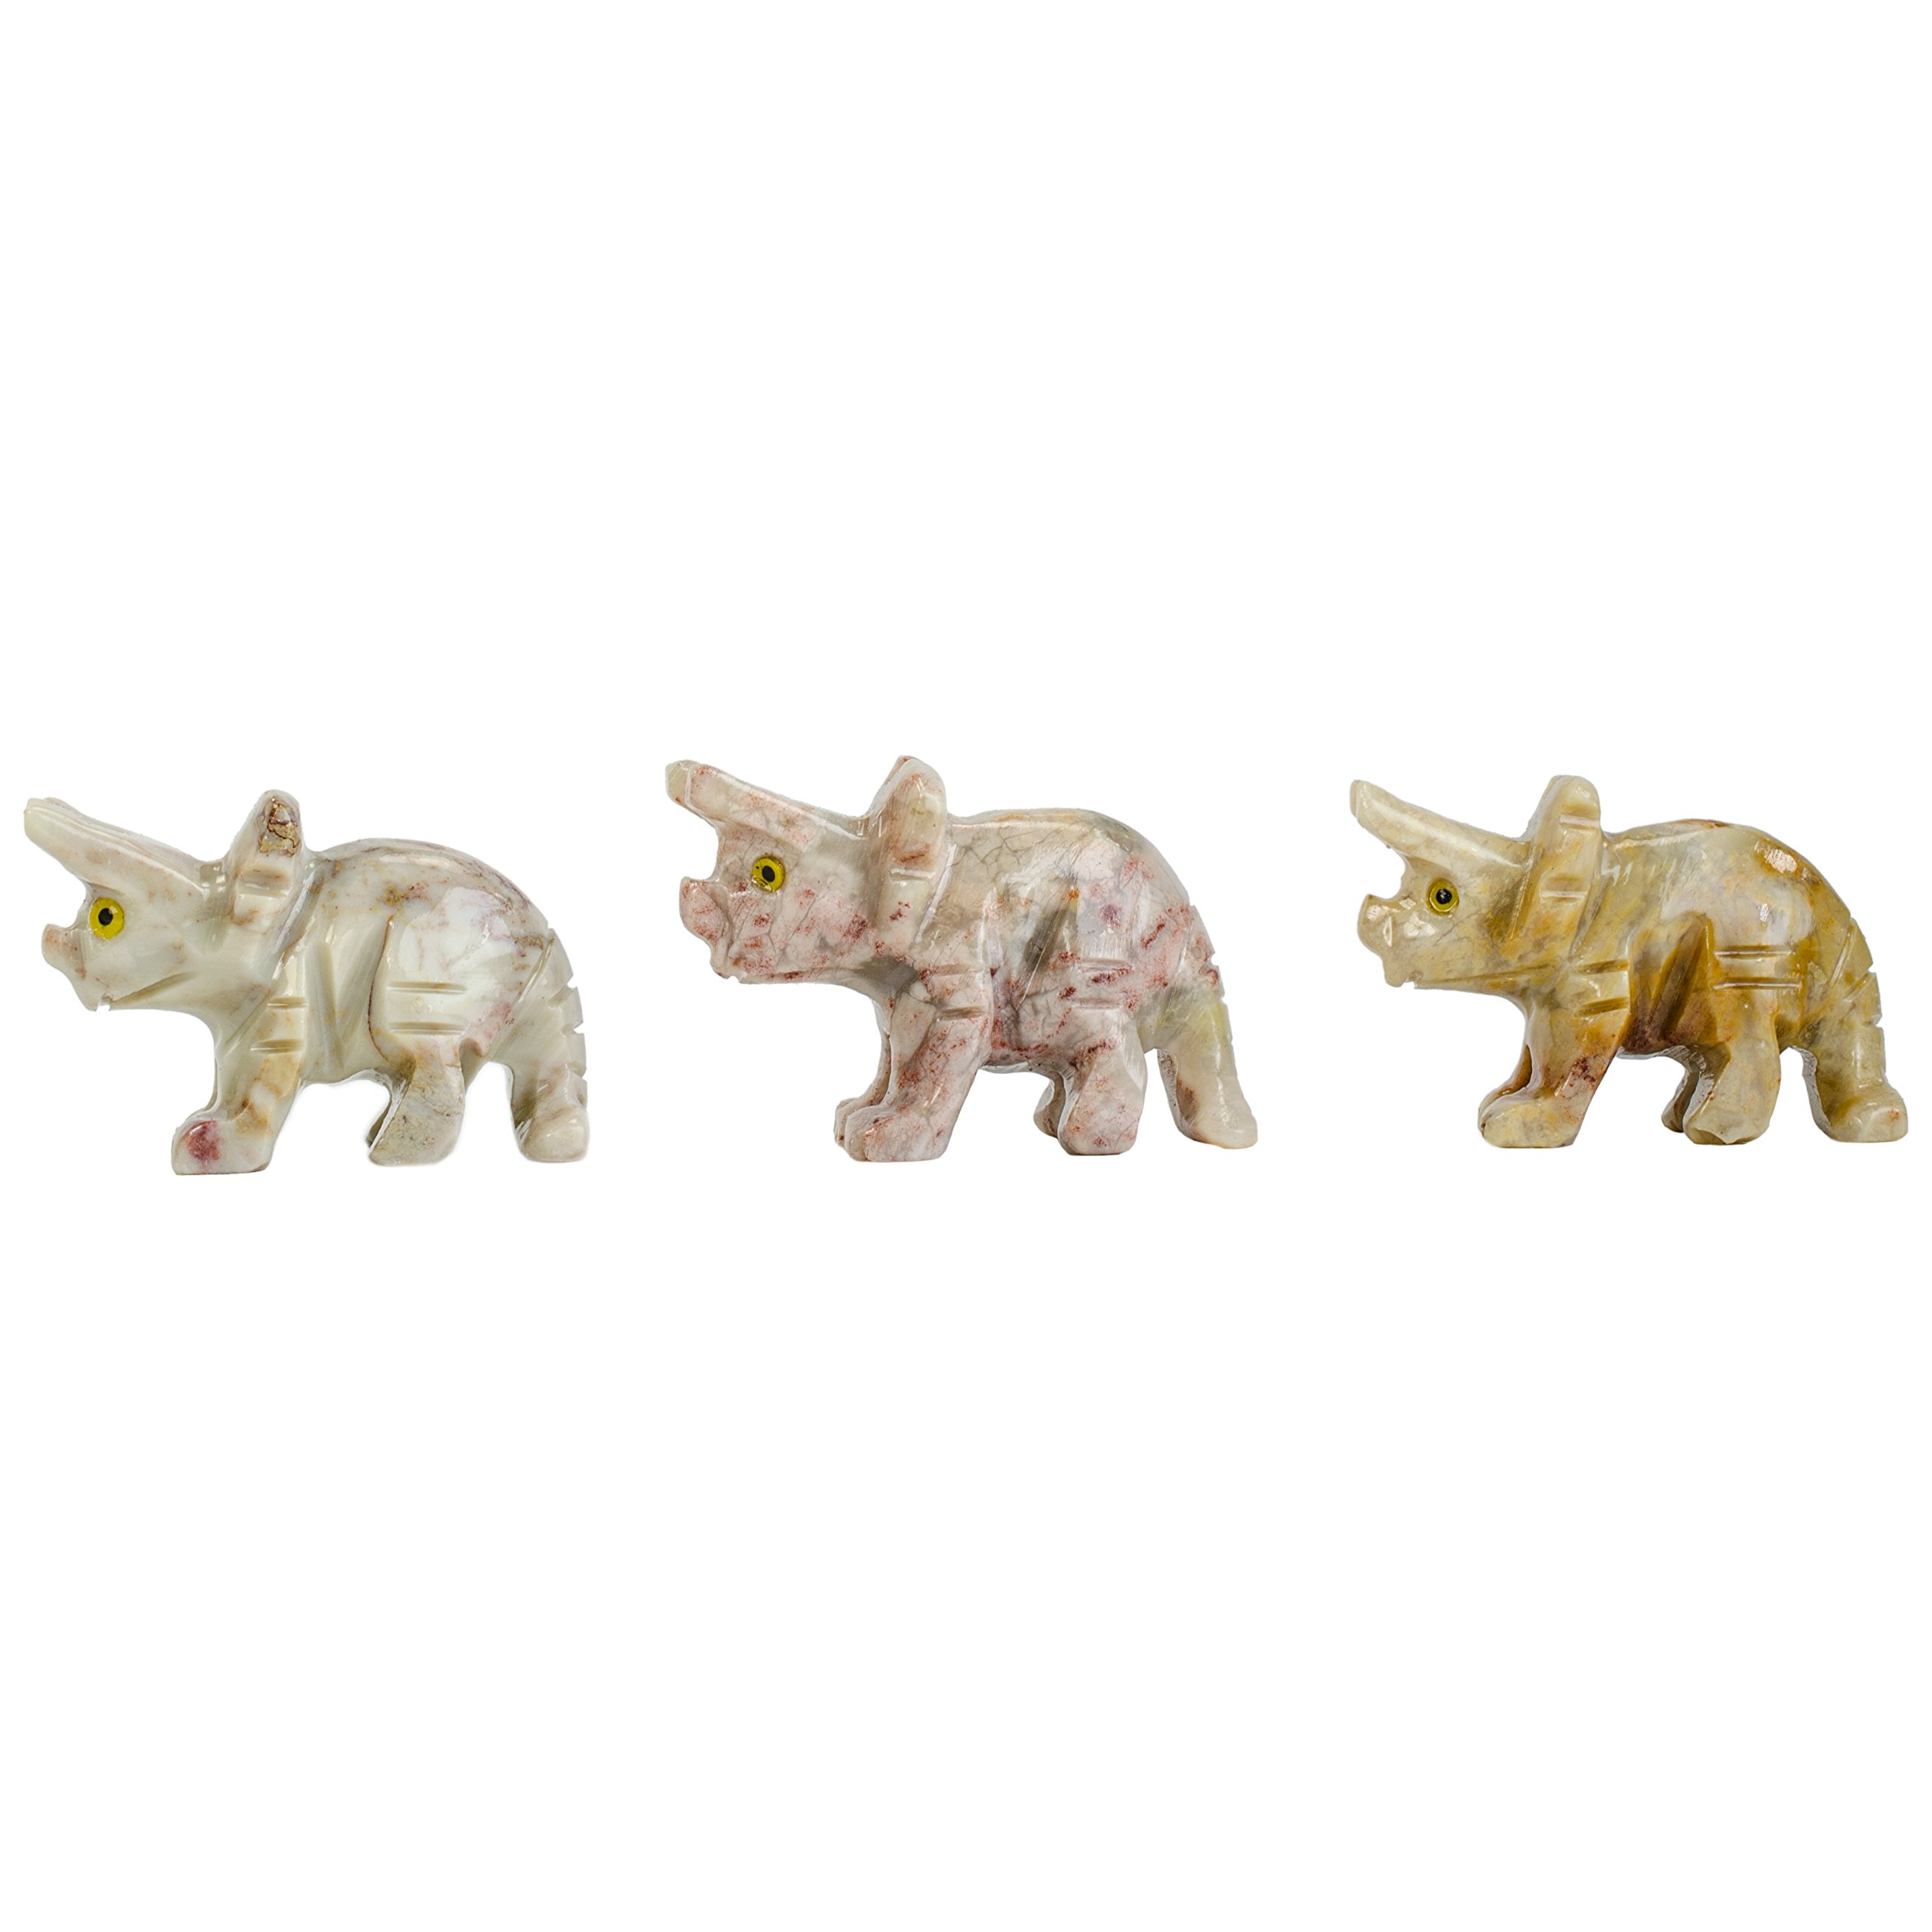 Digging Dolls : 30 pcs Artisan Bronto Collectable Animal Figurine - Party Favors, Stocking Stuffers, Gifts, Collecting and More!